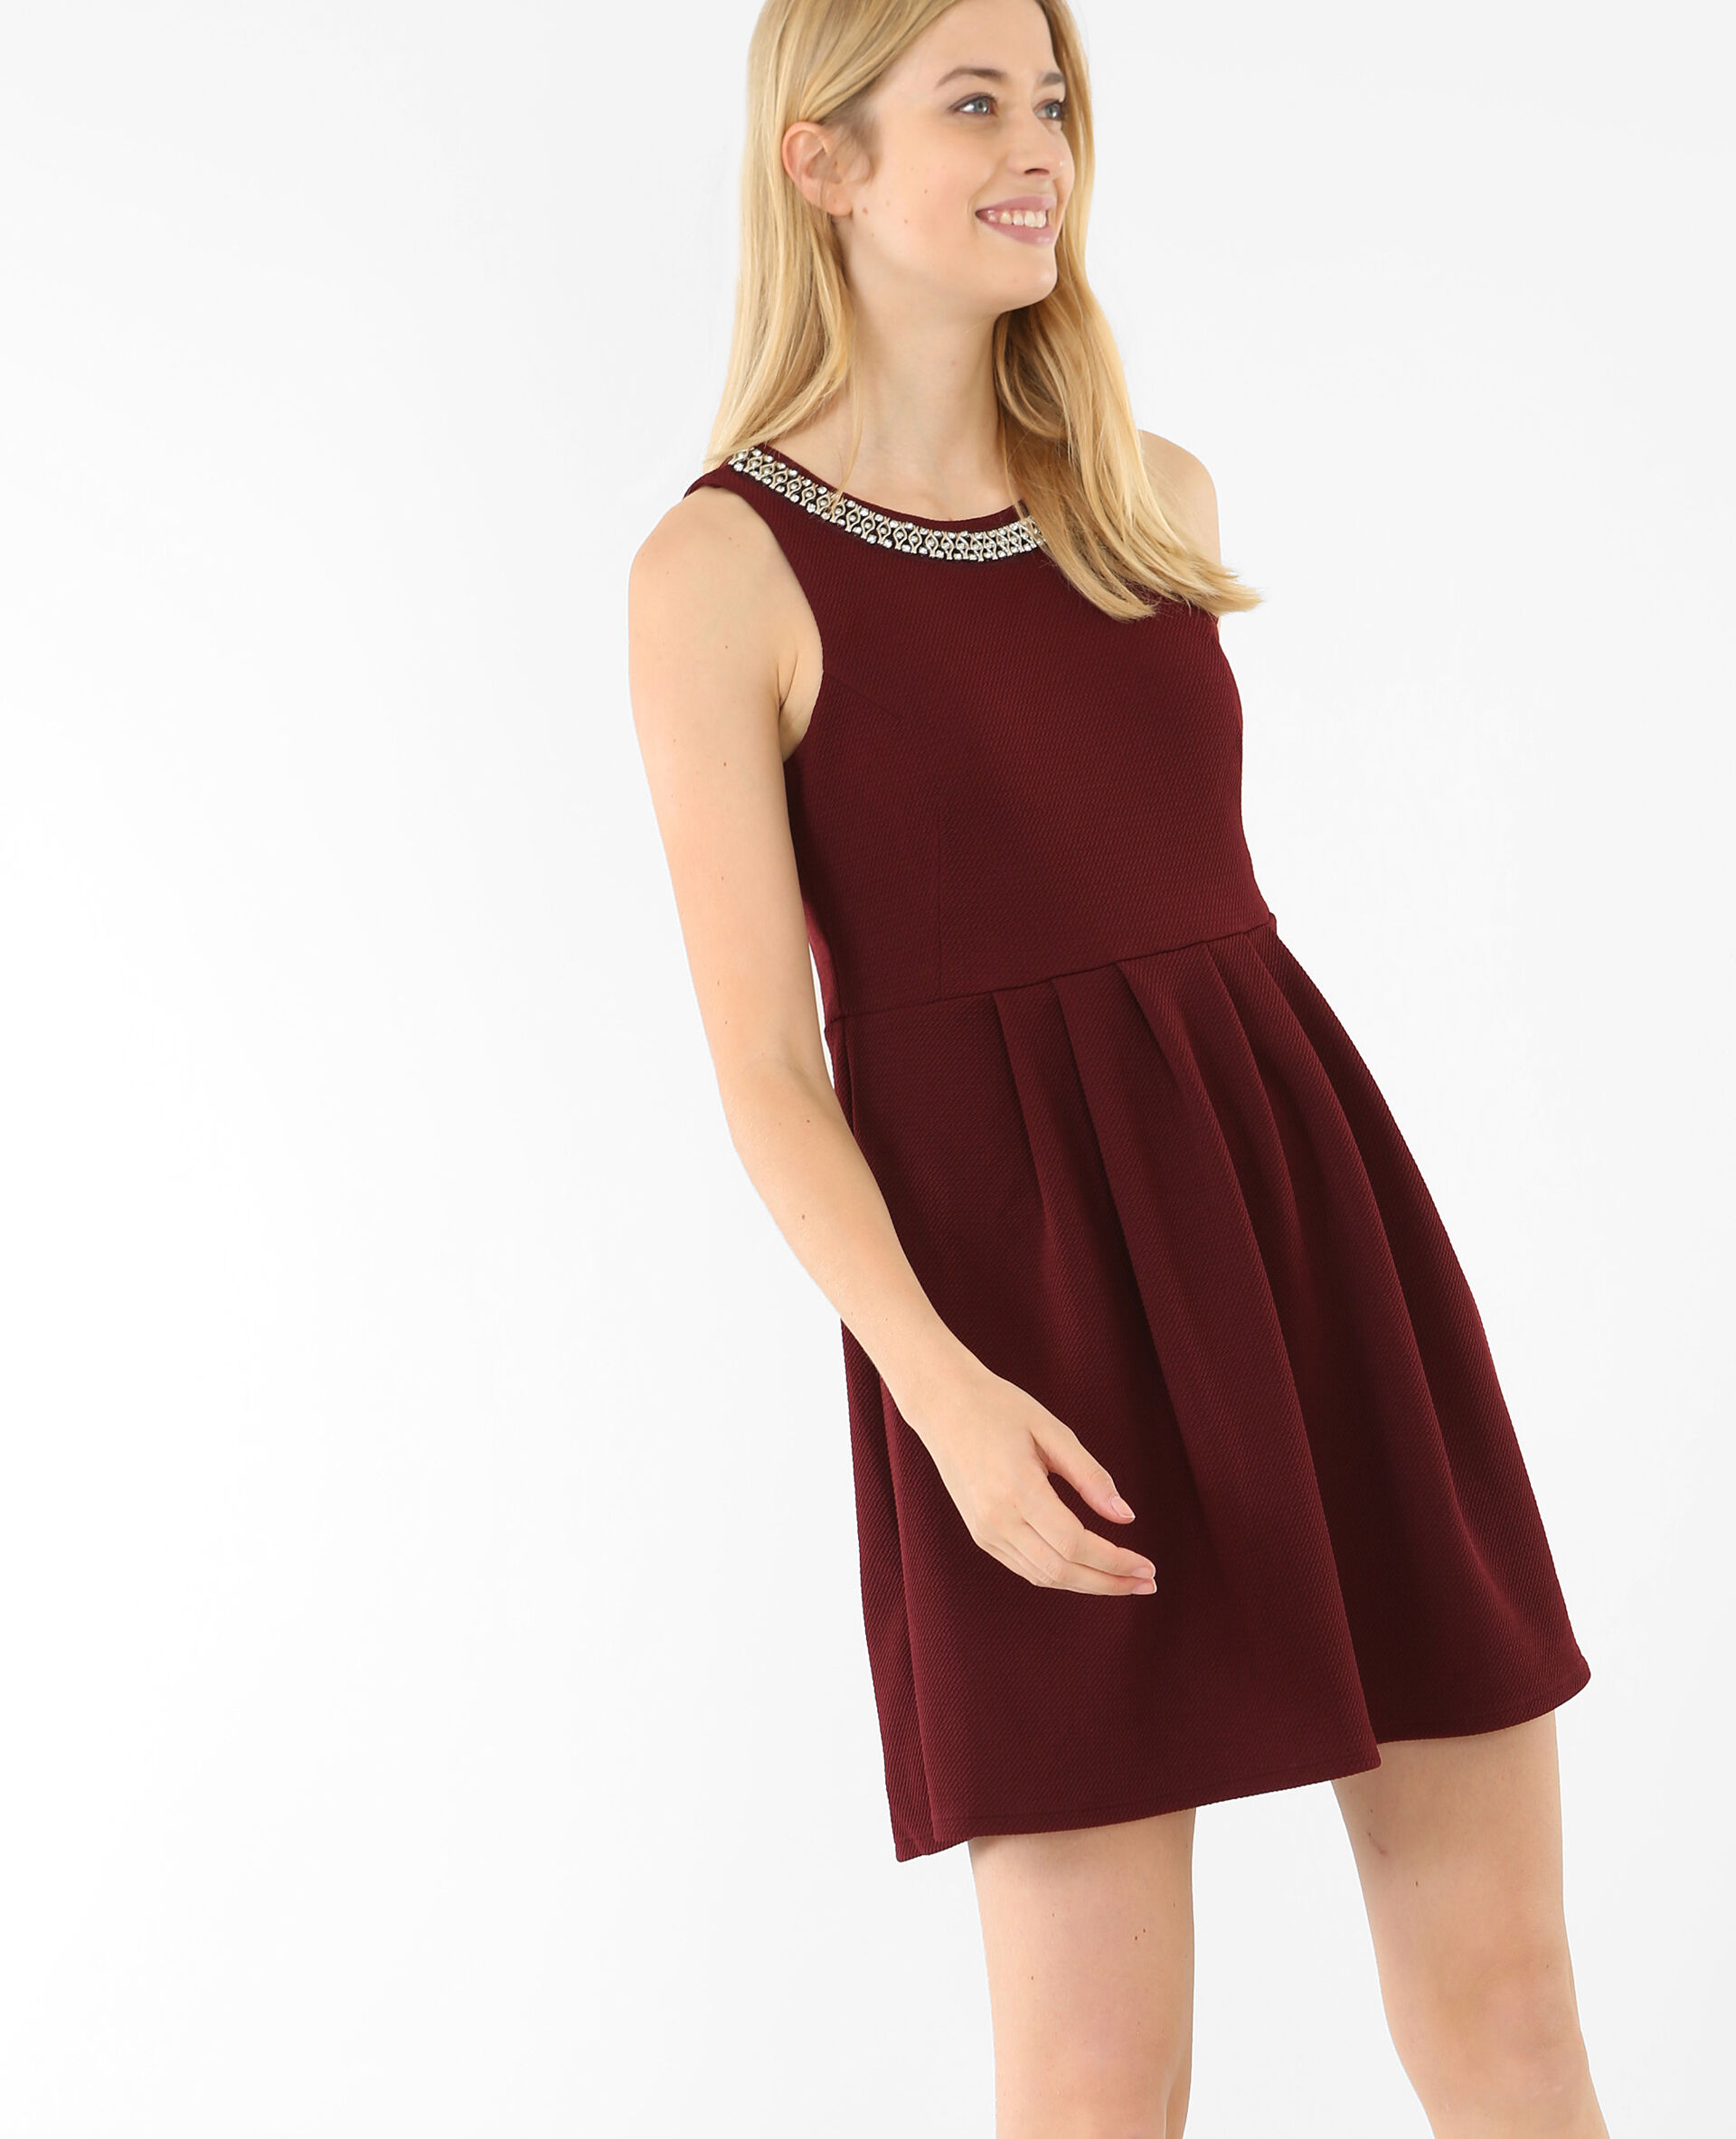 Robe bordeaux patineuse